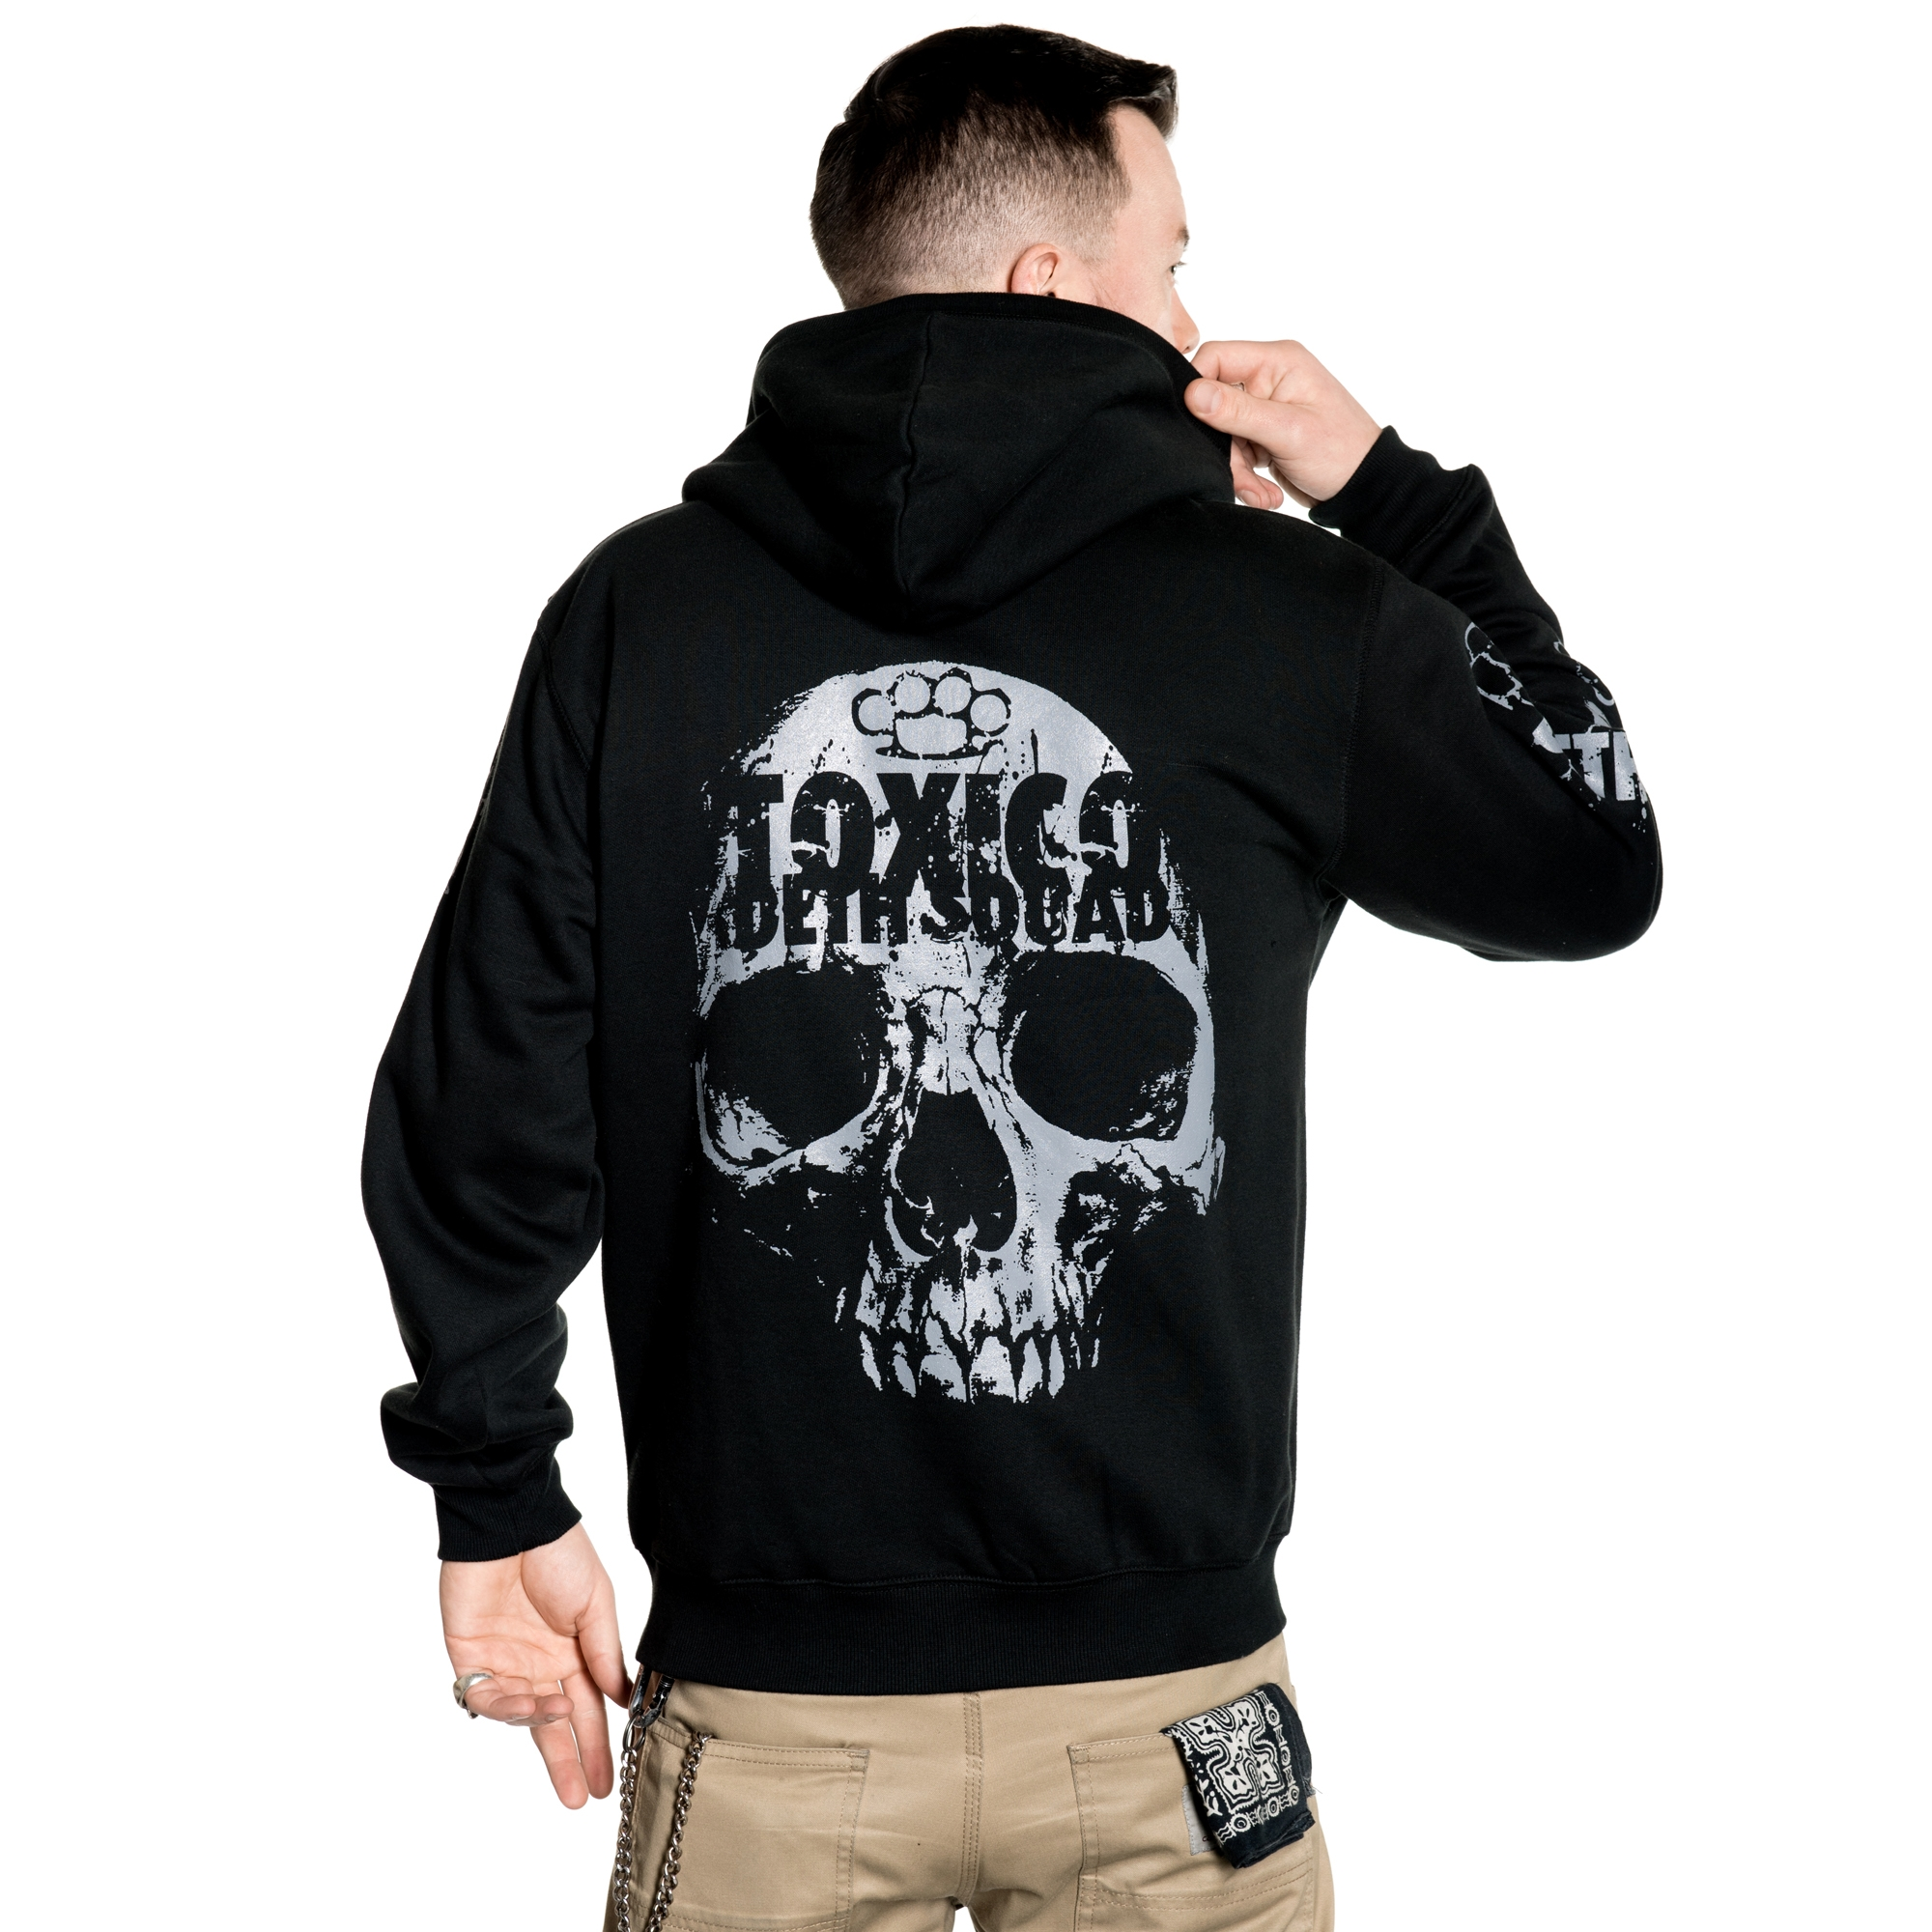 rebelsmarket_toxico_clothing_deth_squad_zip_hood_hoodies_and_sweatshirts_3.jpg